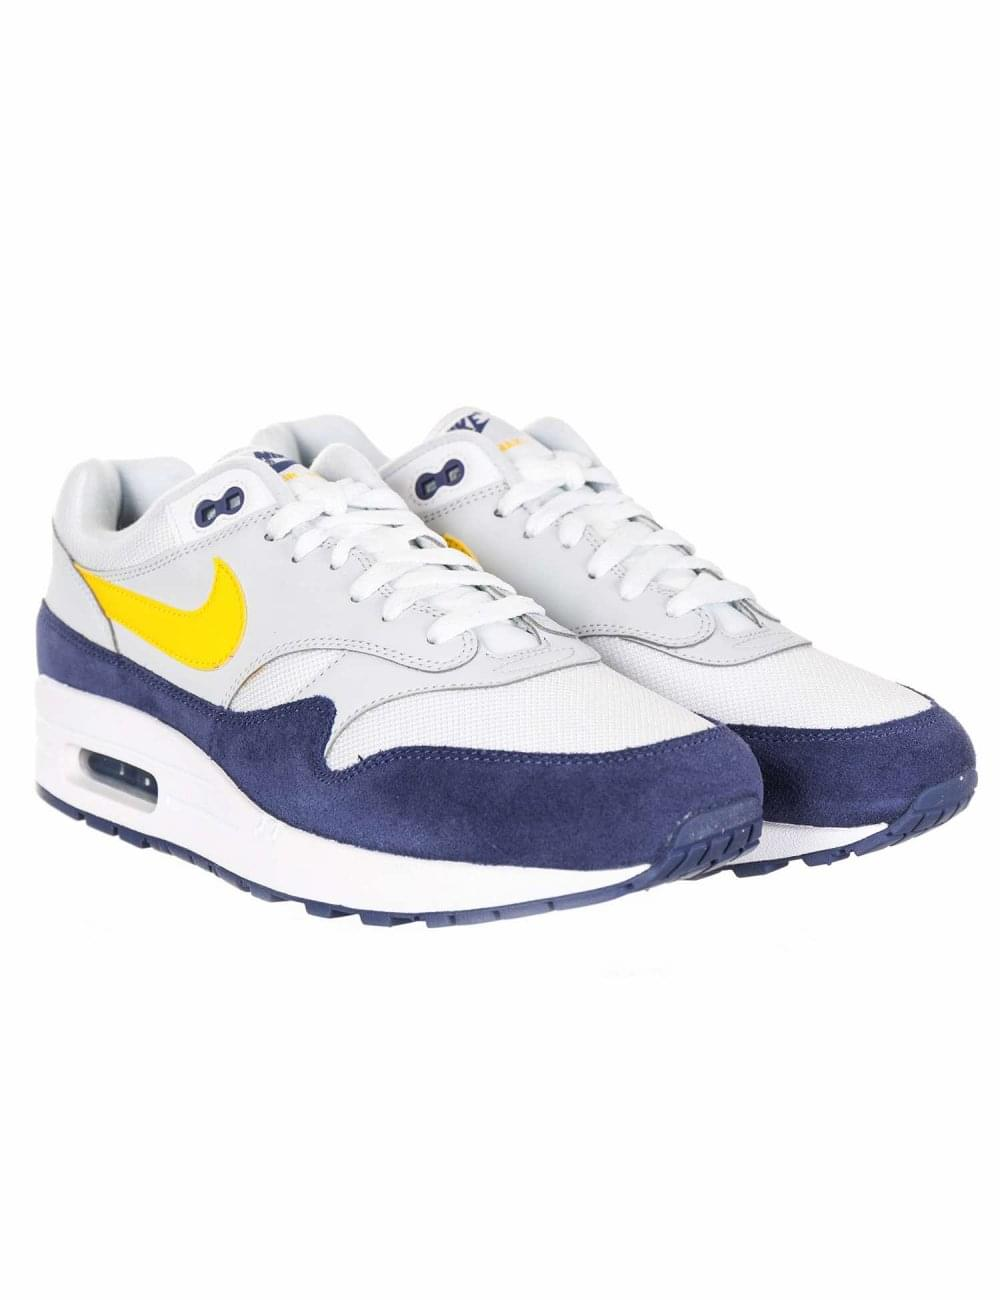 the best attitude 06114 d6fe1 Air Max 1 Trainers - White Tour Yellow Blue Recall